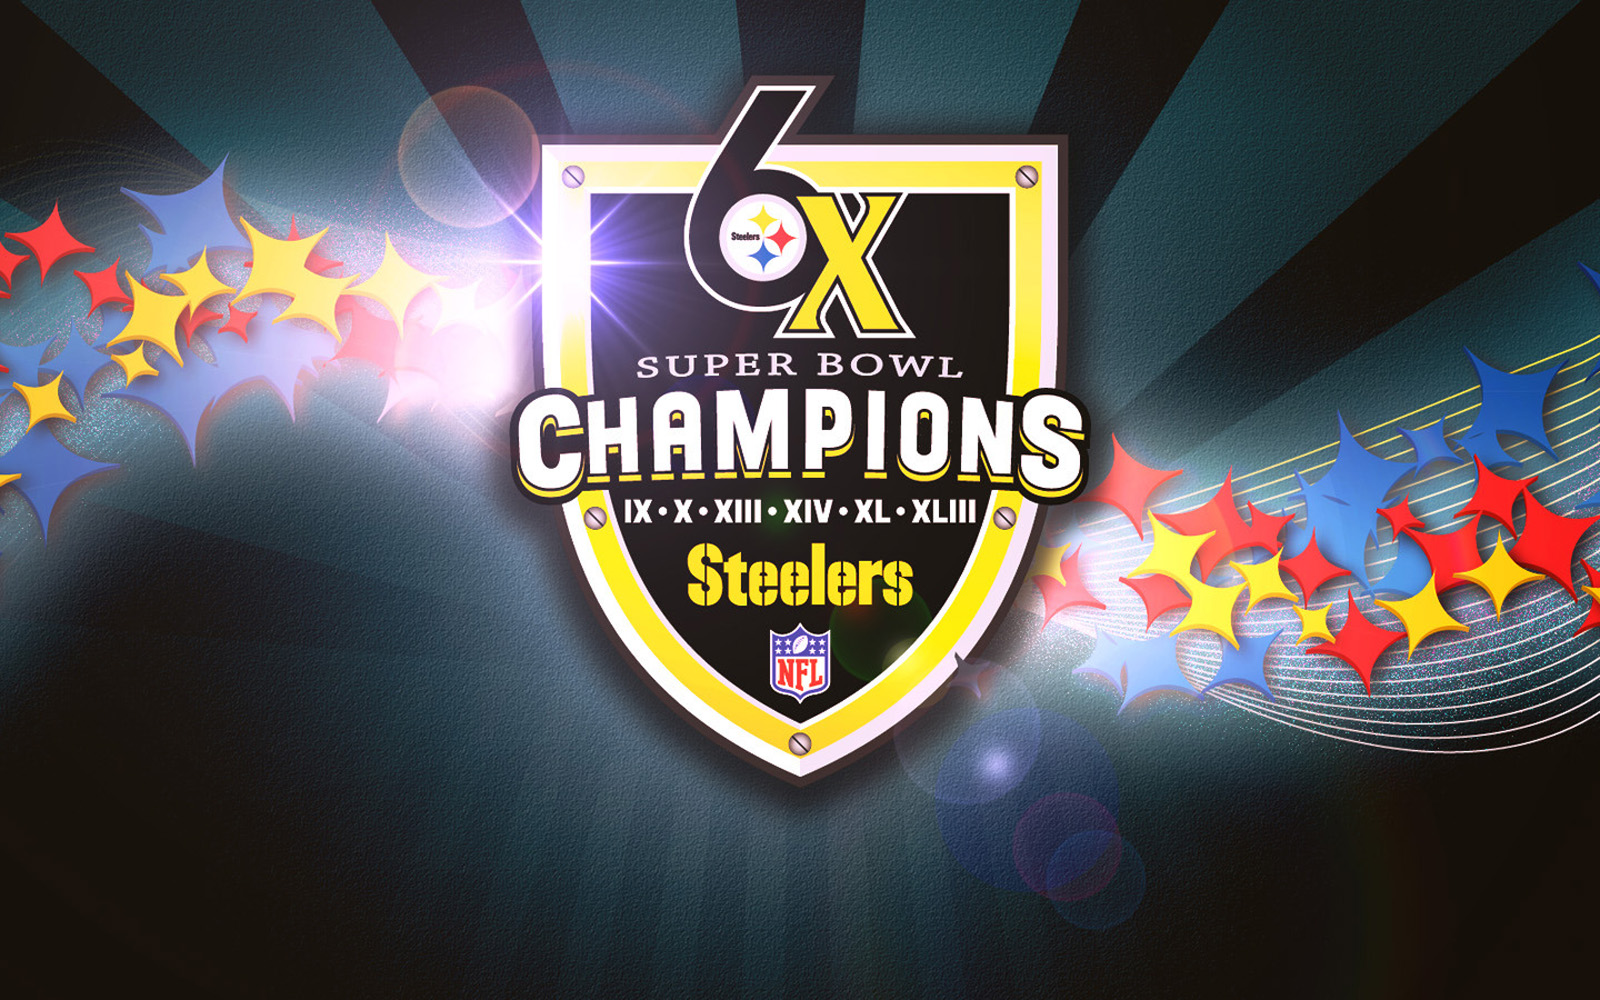 Wallpapers Steelers Steelers 6x Super Bowl Champions 1557377 Hd Wallpaper Backgrounds Download